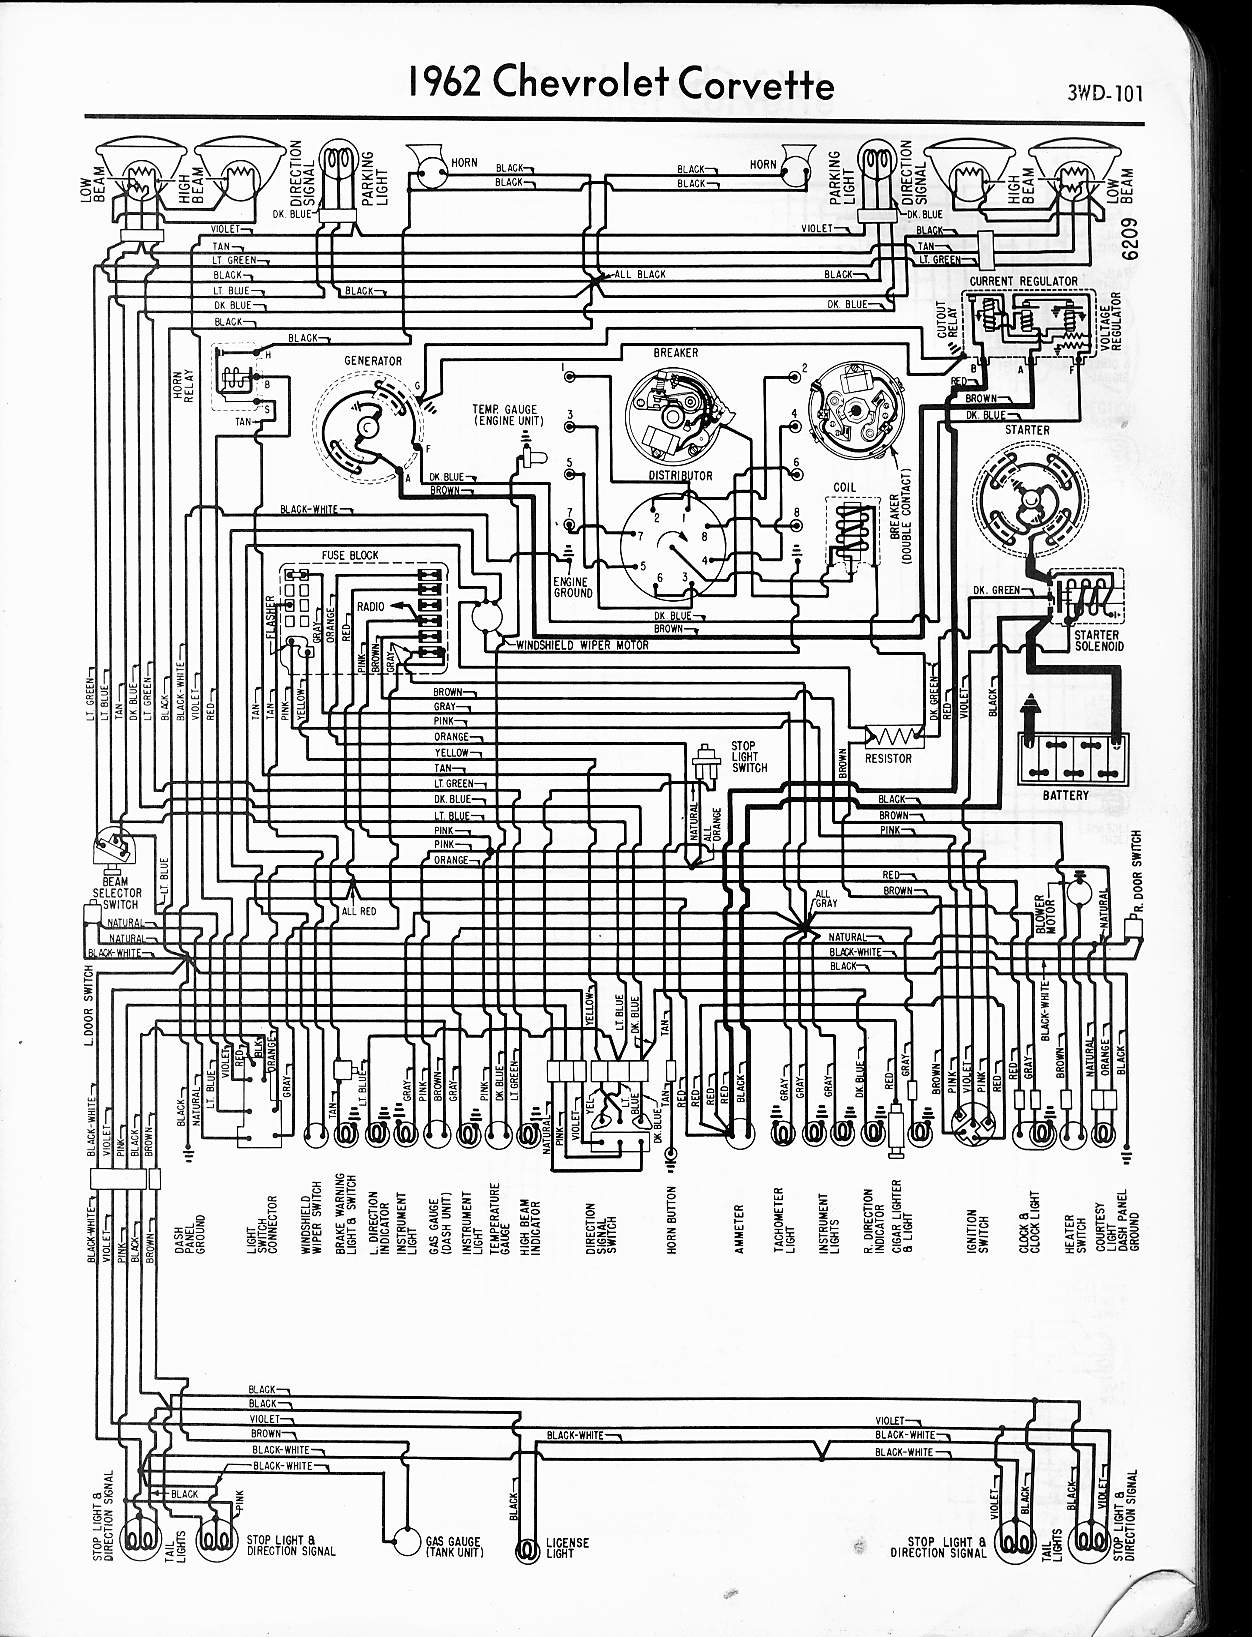 hight resolution of 69 impala interior wiring diagram wiring library rh 31 bloxhuette de 64 chevrolet impala 68 chevrolet impala